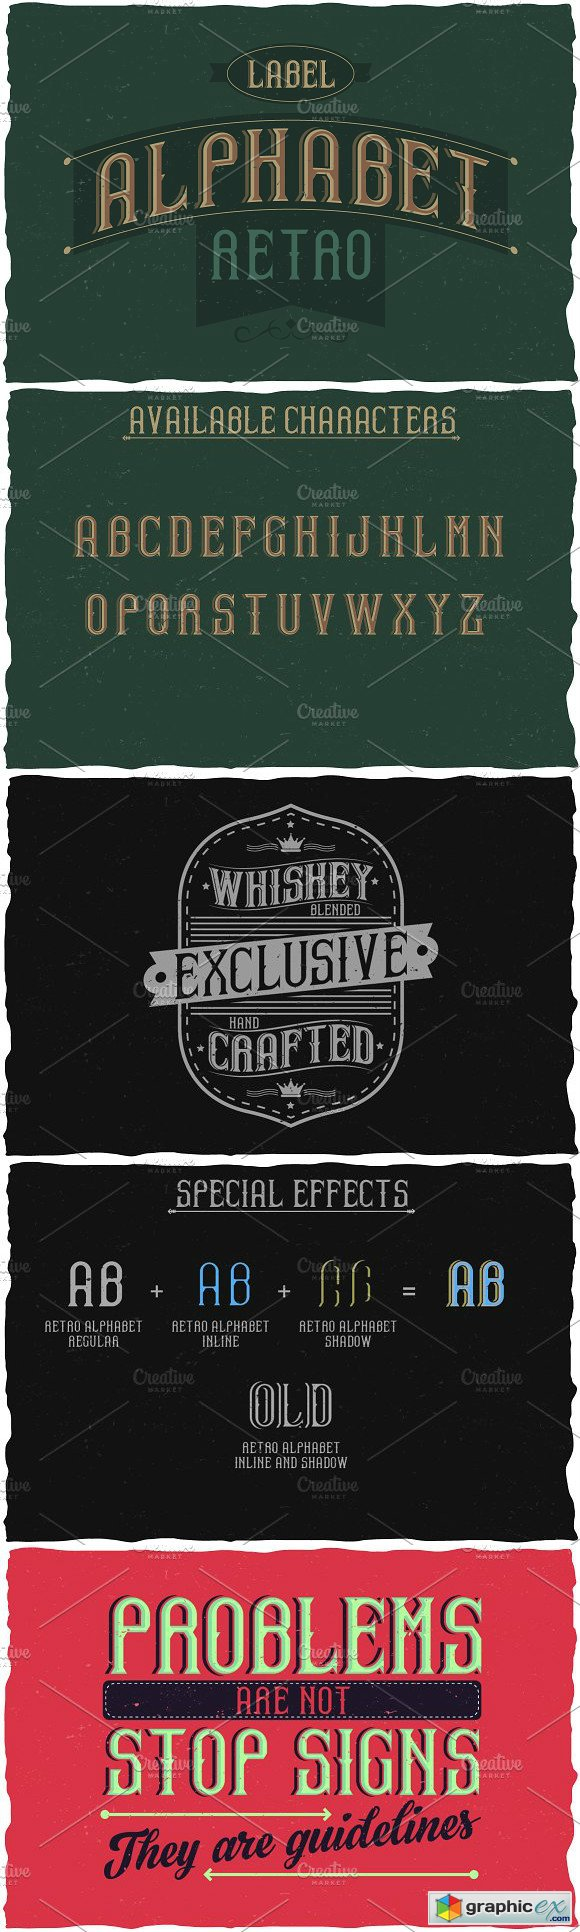 Retro Alphabet Label Typeface font